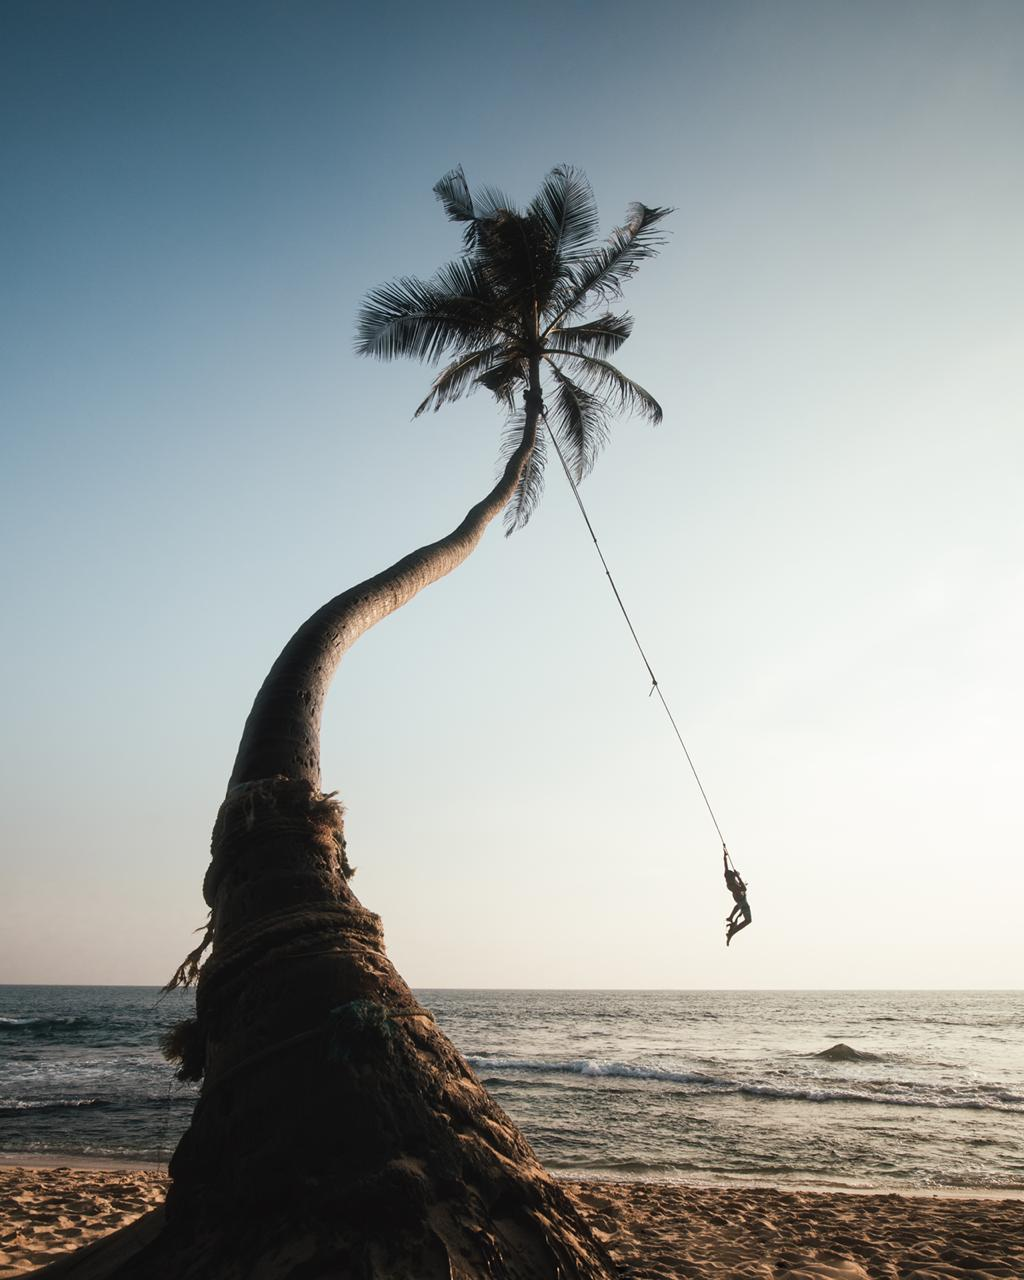 Dalawella Beach Rope Swing, Sri Lanka